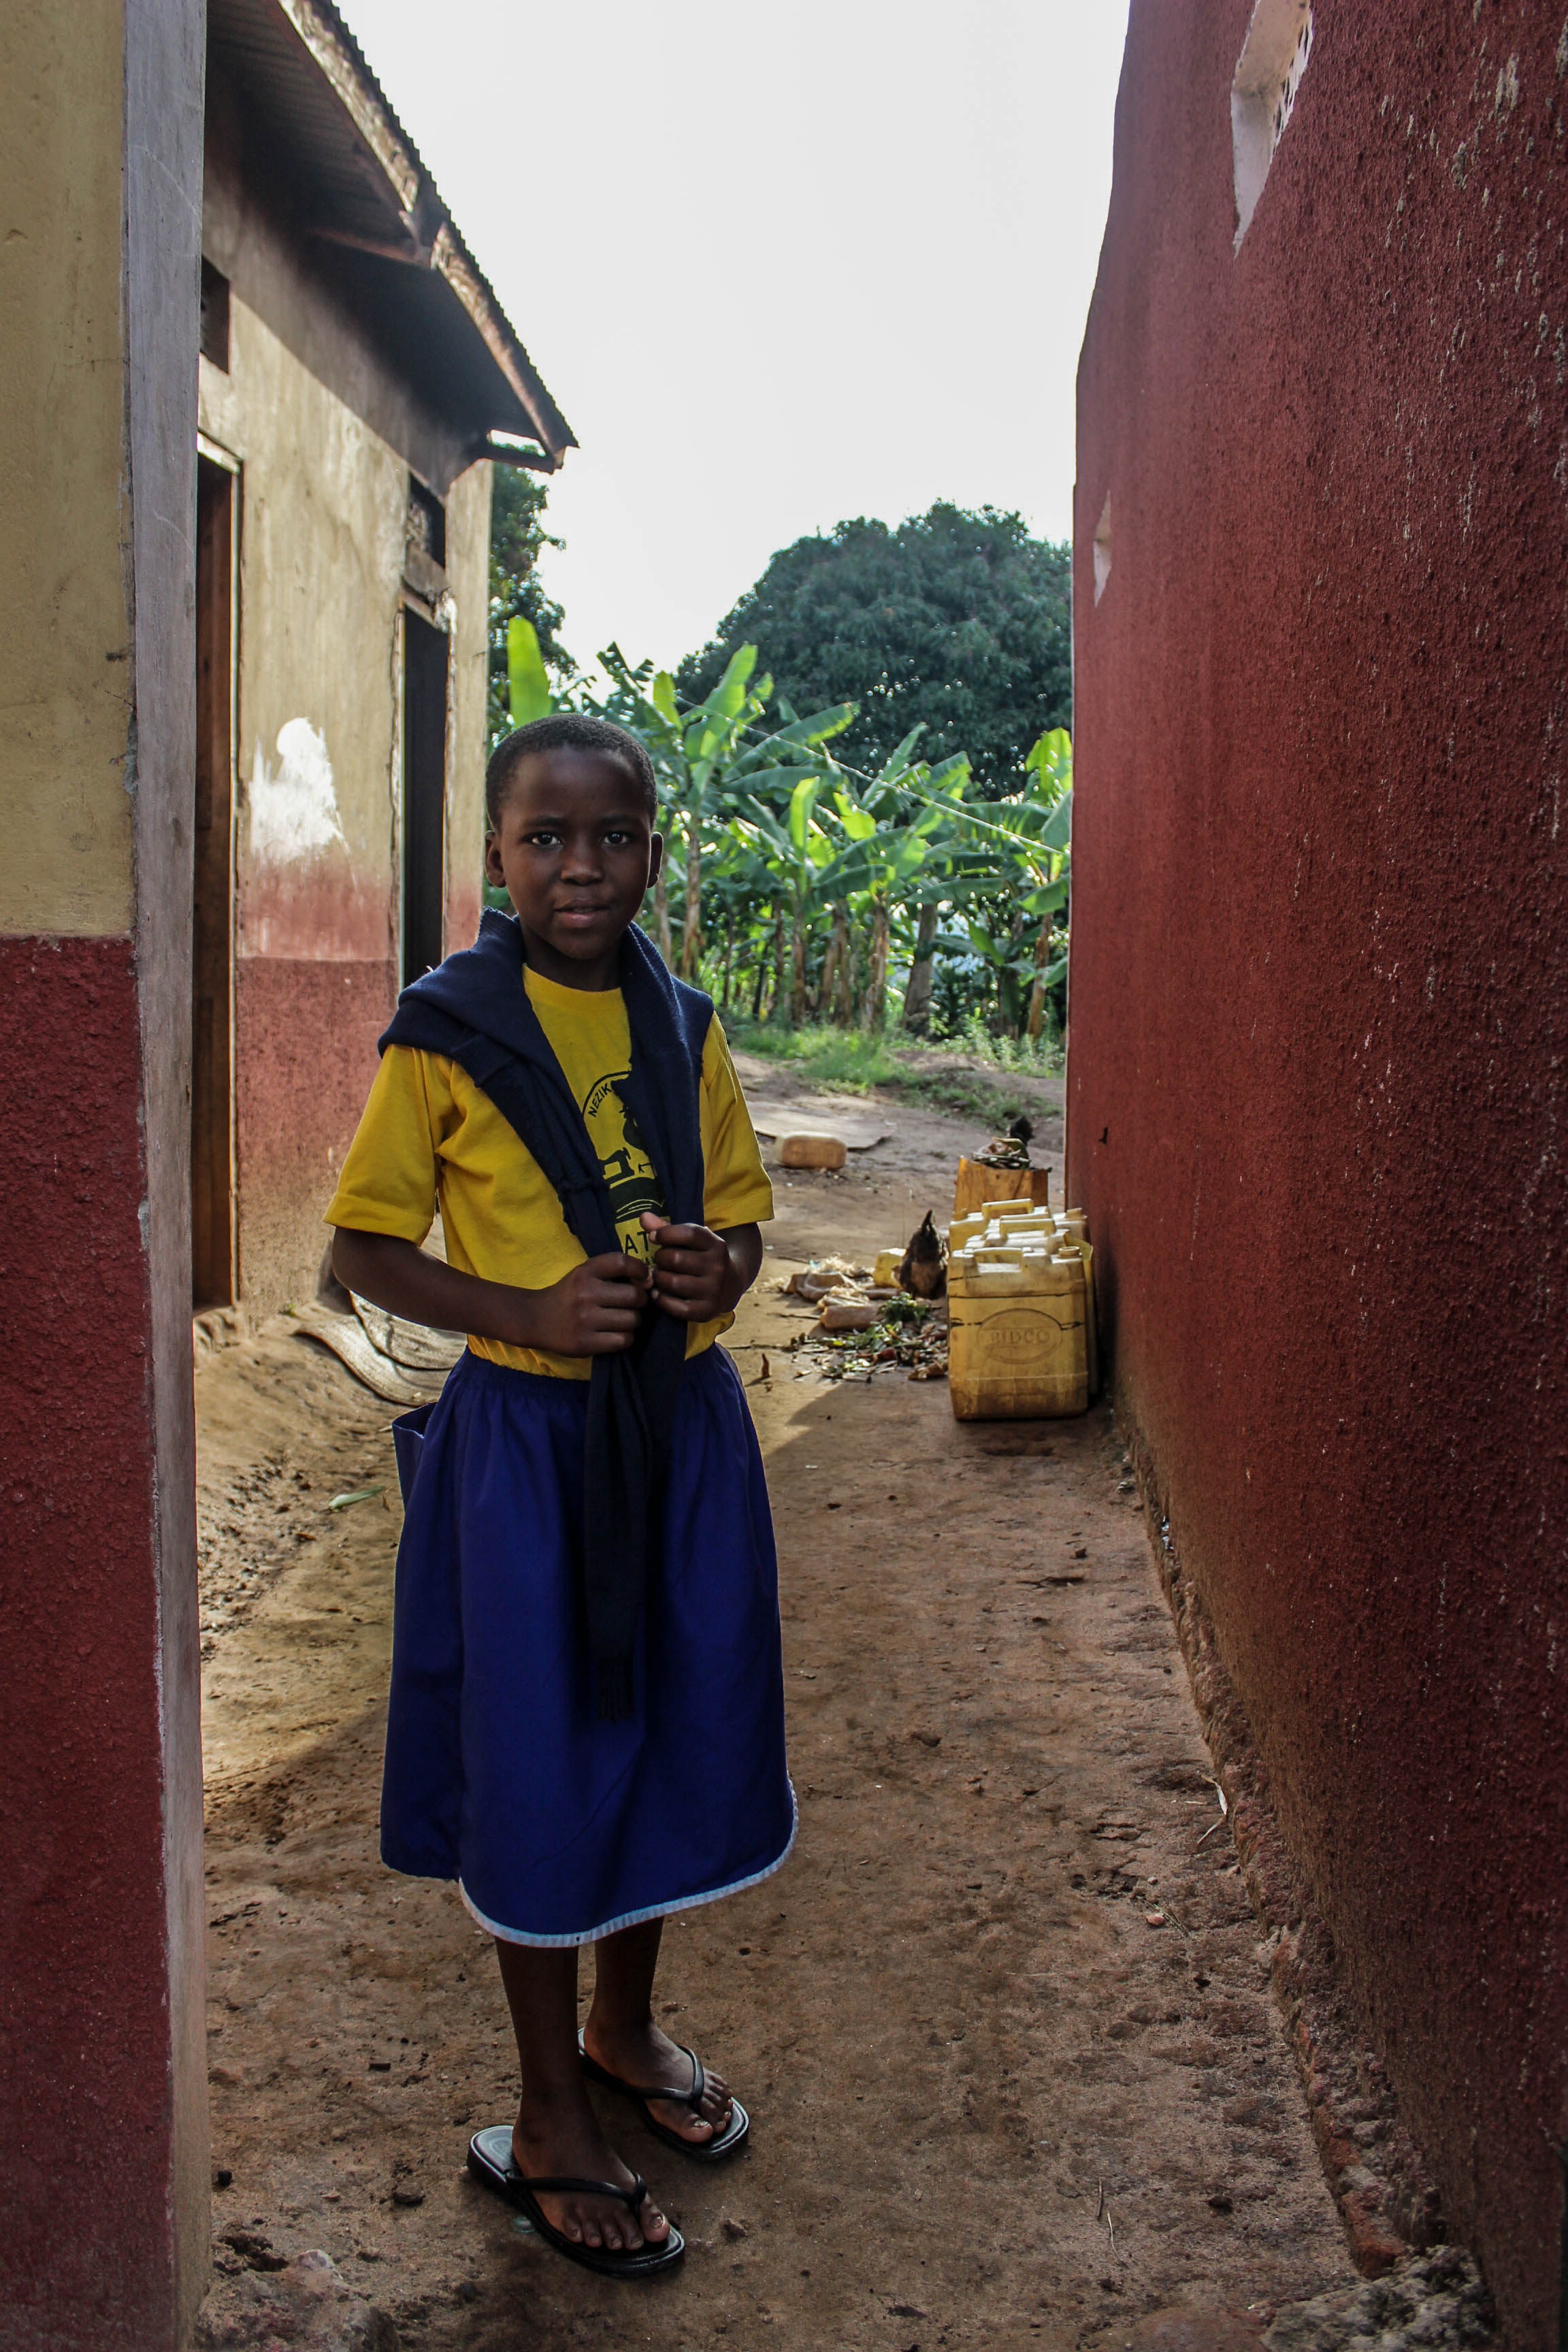 Goretti's home is a simple structure surrounded by her uncle's crops. The yellow containers behind are a constant sight in rural Uganda as they're used to carry water from a well. This can be a long journey for many children to carry many litres of water on their backs each day.